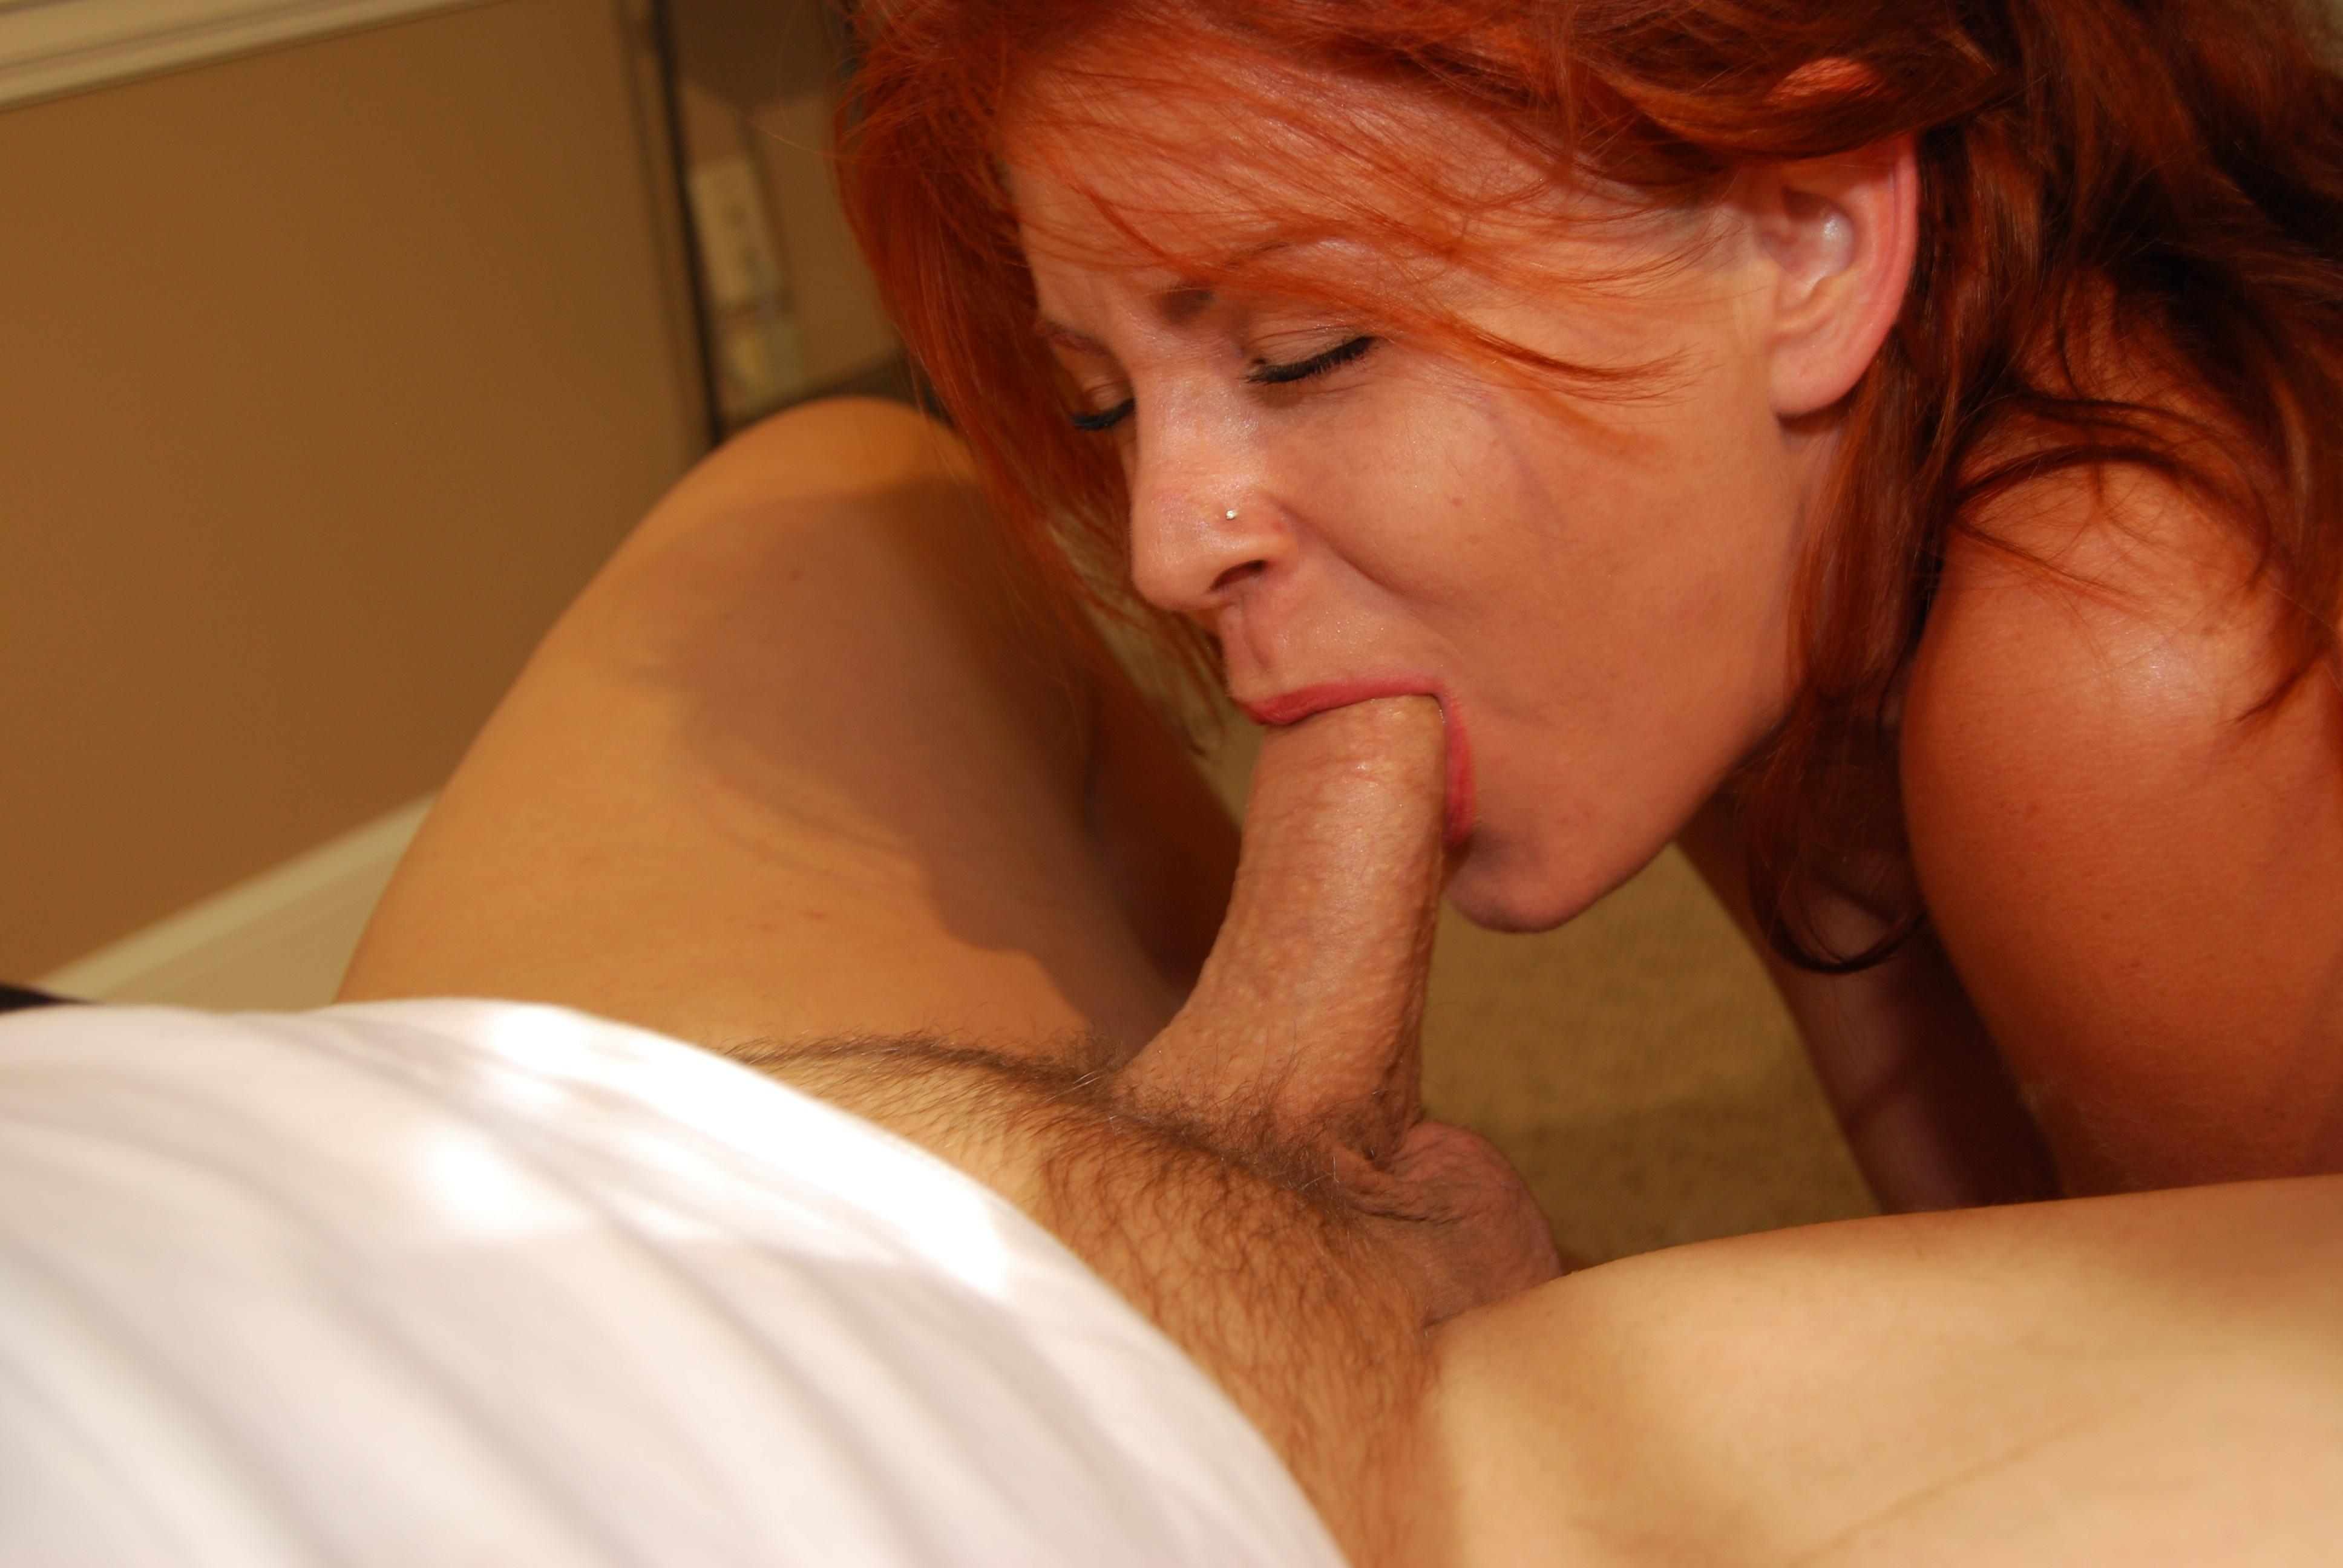 Mom Fingers Daughter Free Porn Galery